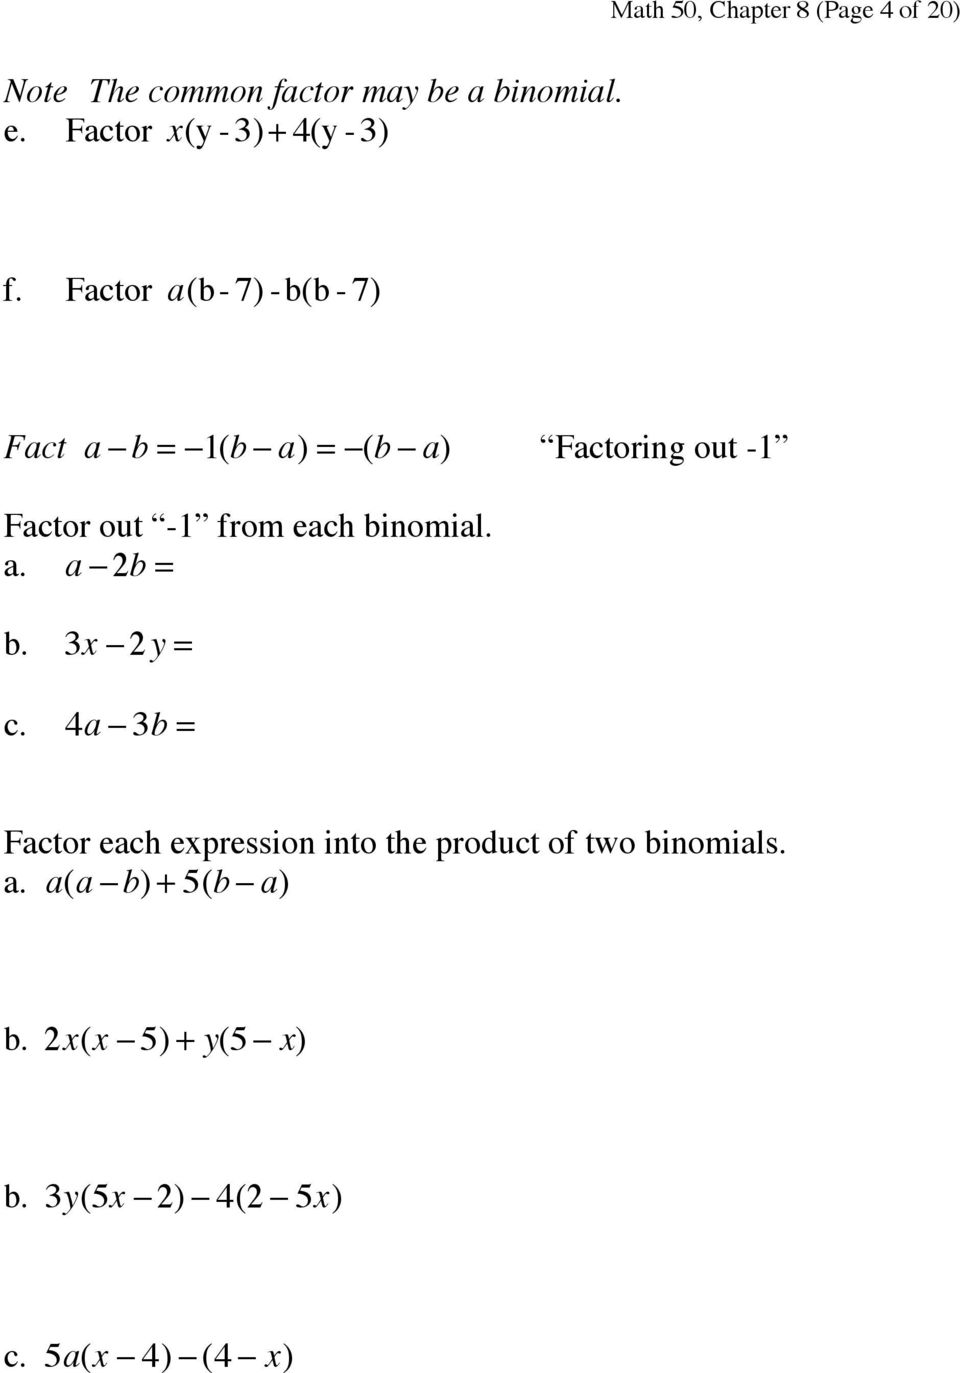 Factor a(b- 7) -b(b - 7) Fact a - b = -1(b - a) = -(b - a) Factoring out -1 Factor out -1 from each